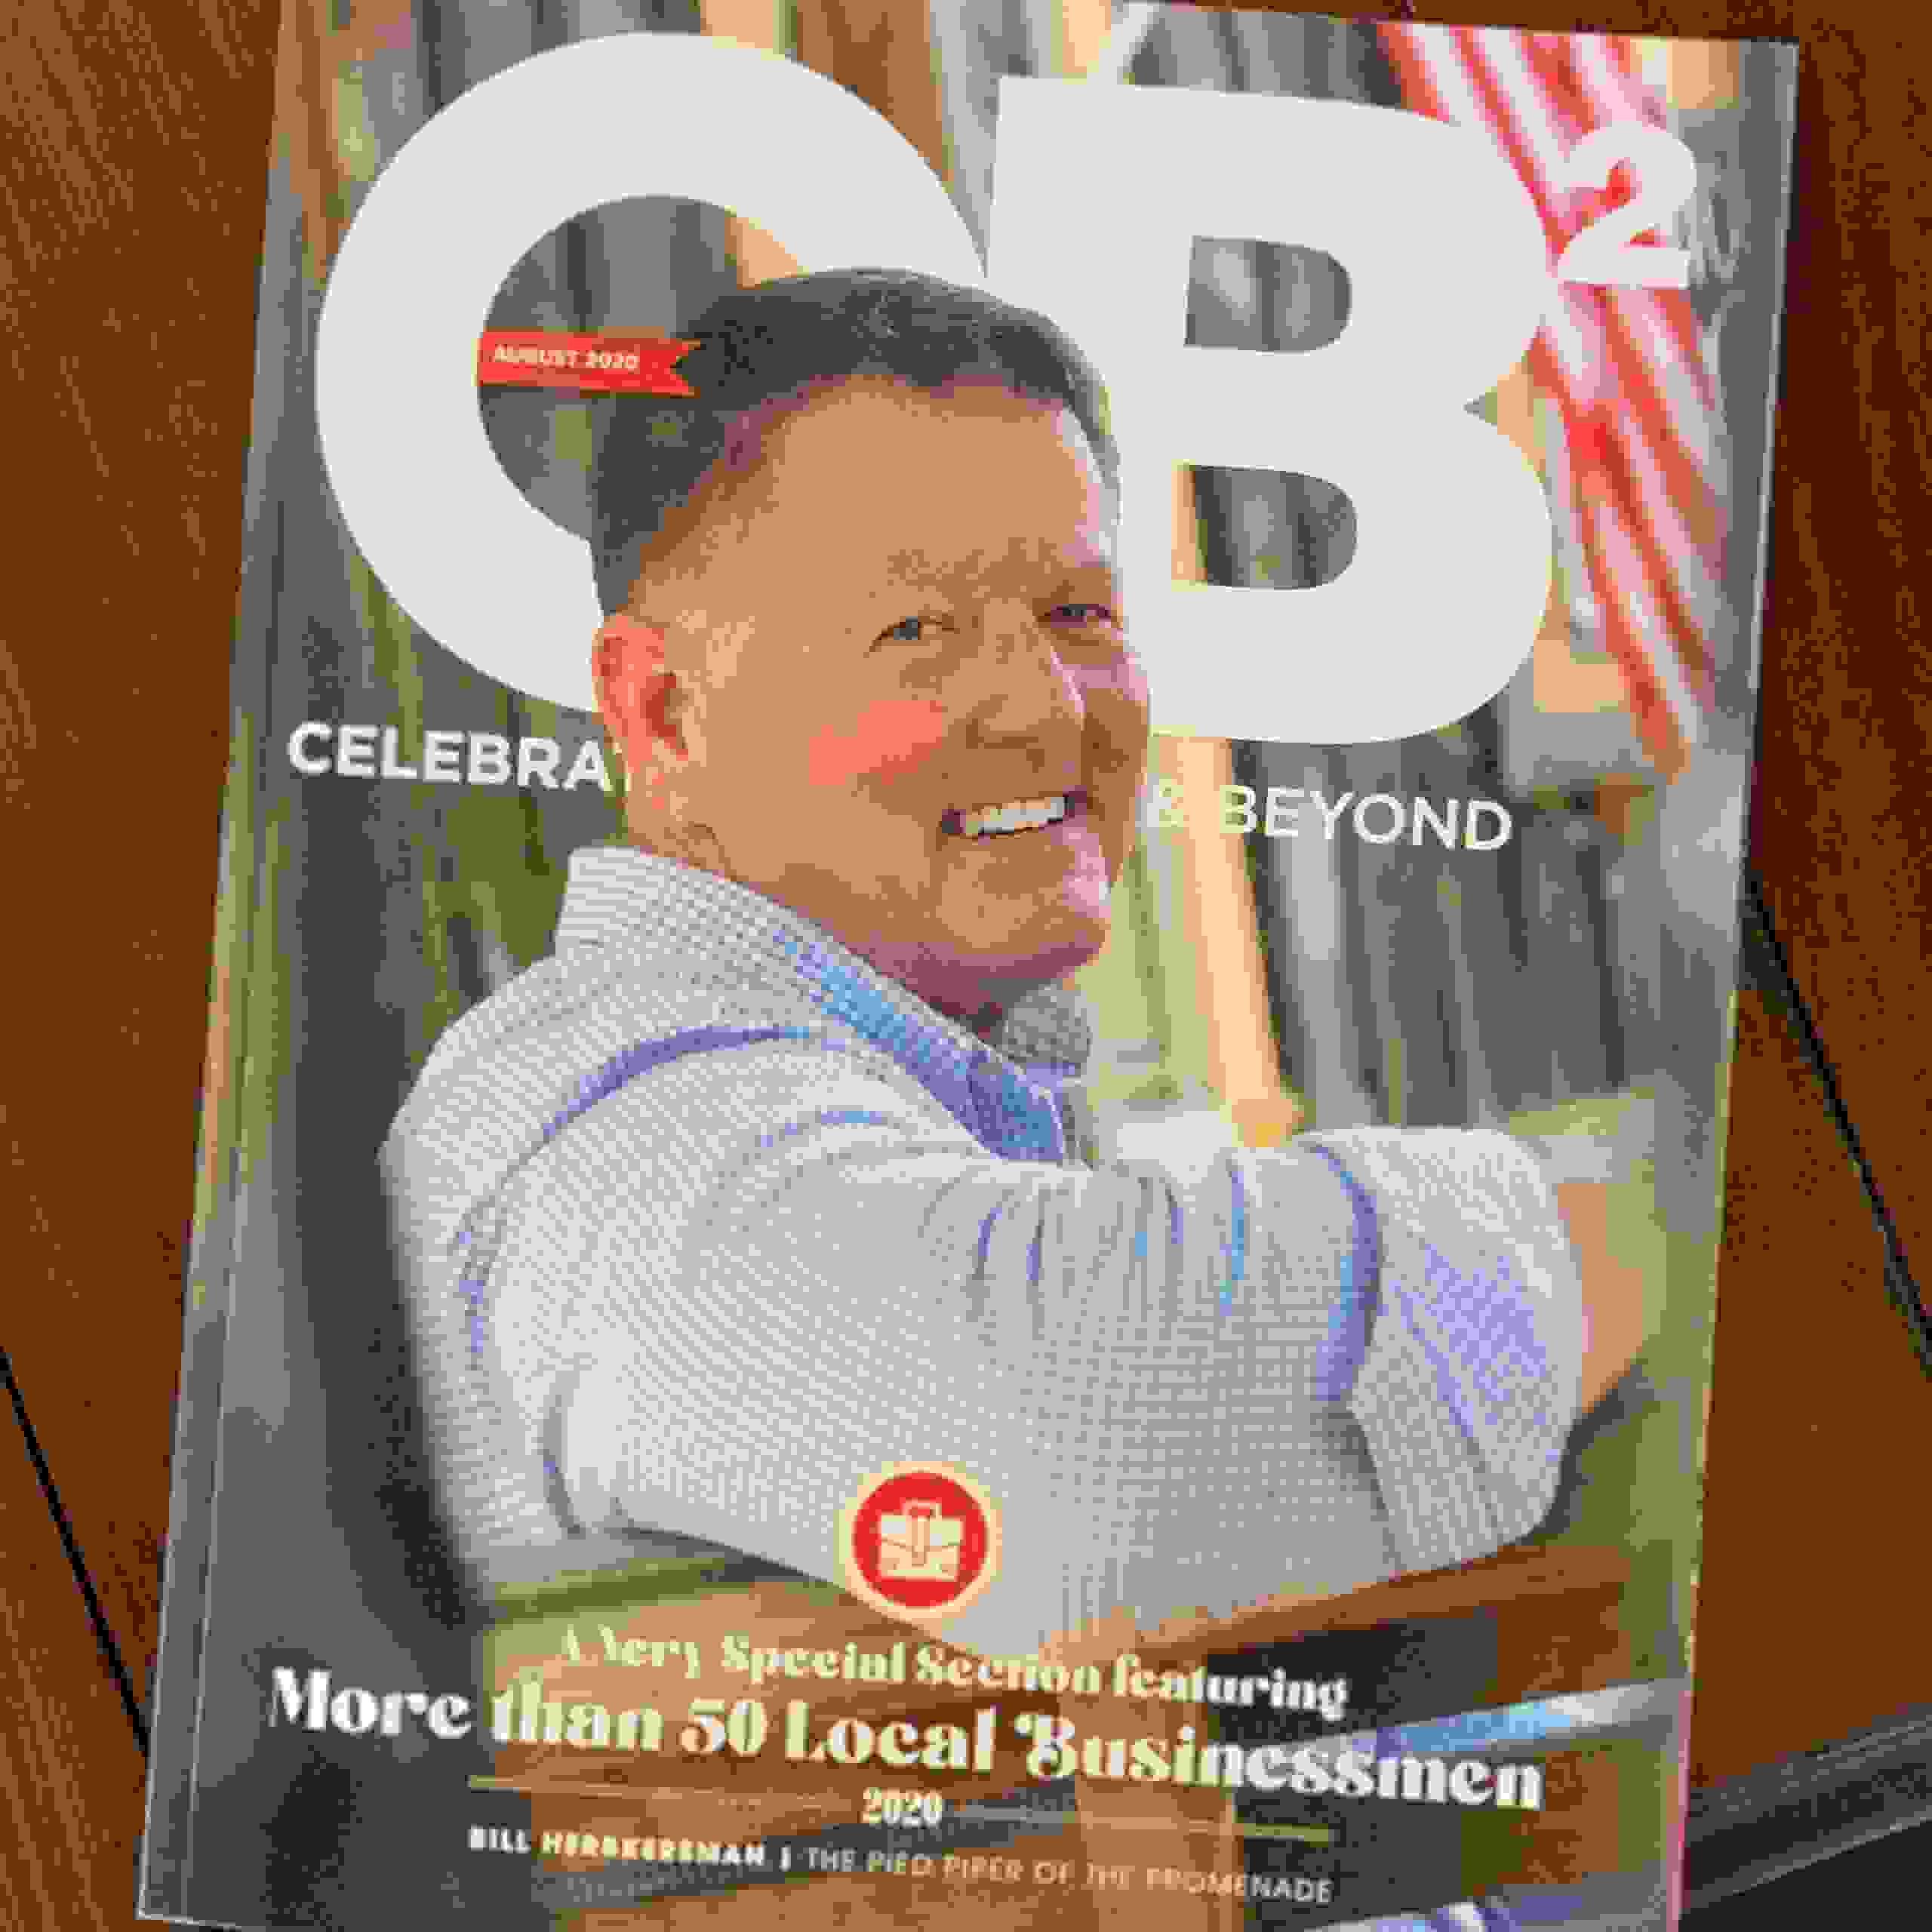 Rep. Bill Herbkersman, a Republican from Beaufort County, SC represents District 118 on cover of CH2